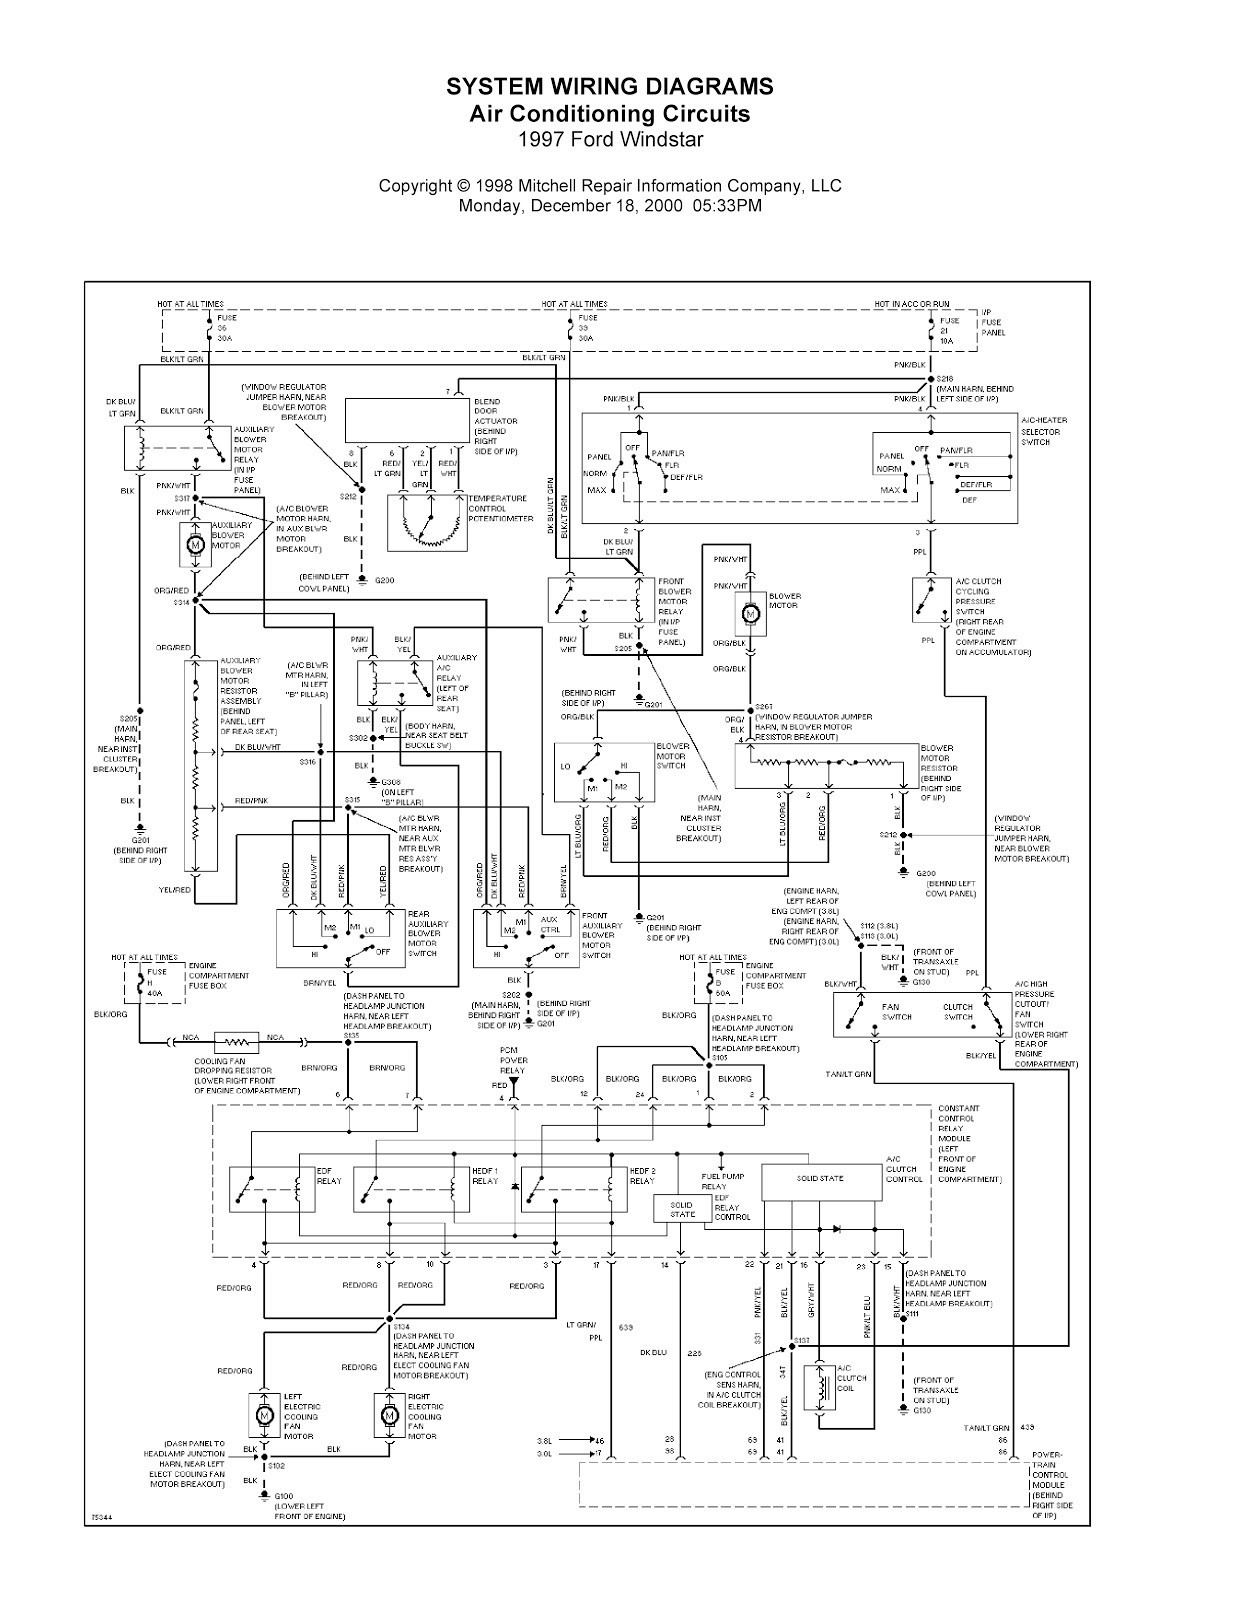 System Wiring Diagram 1999 Ford Wire 1988 Nissan 300zx Windstar Data Todayford Schematic Diagrams